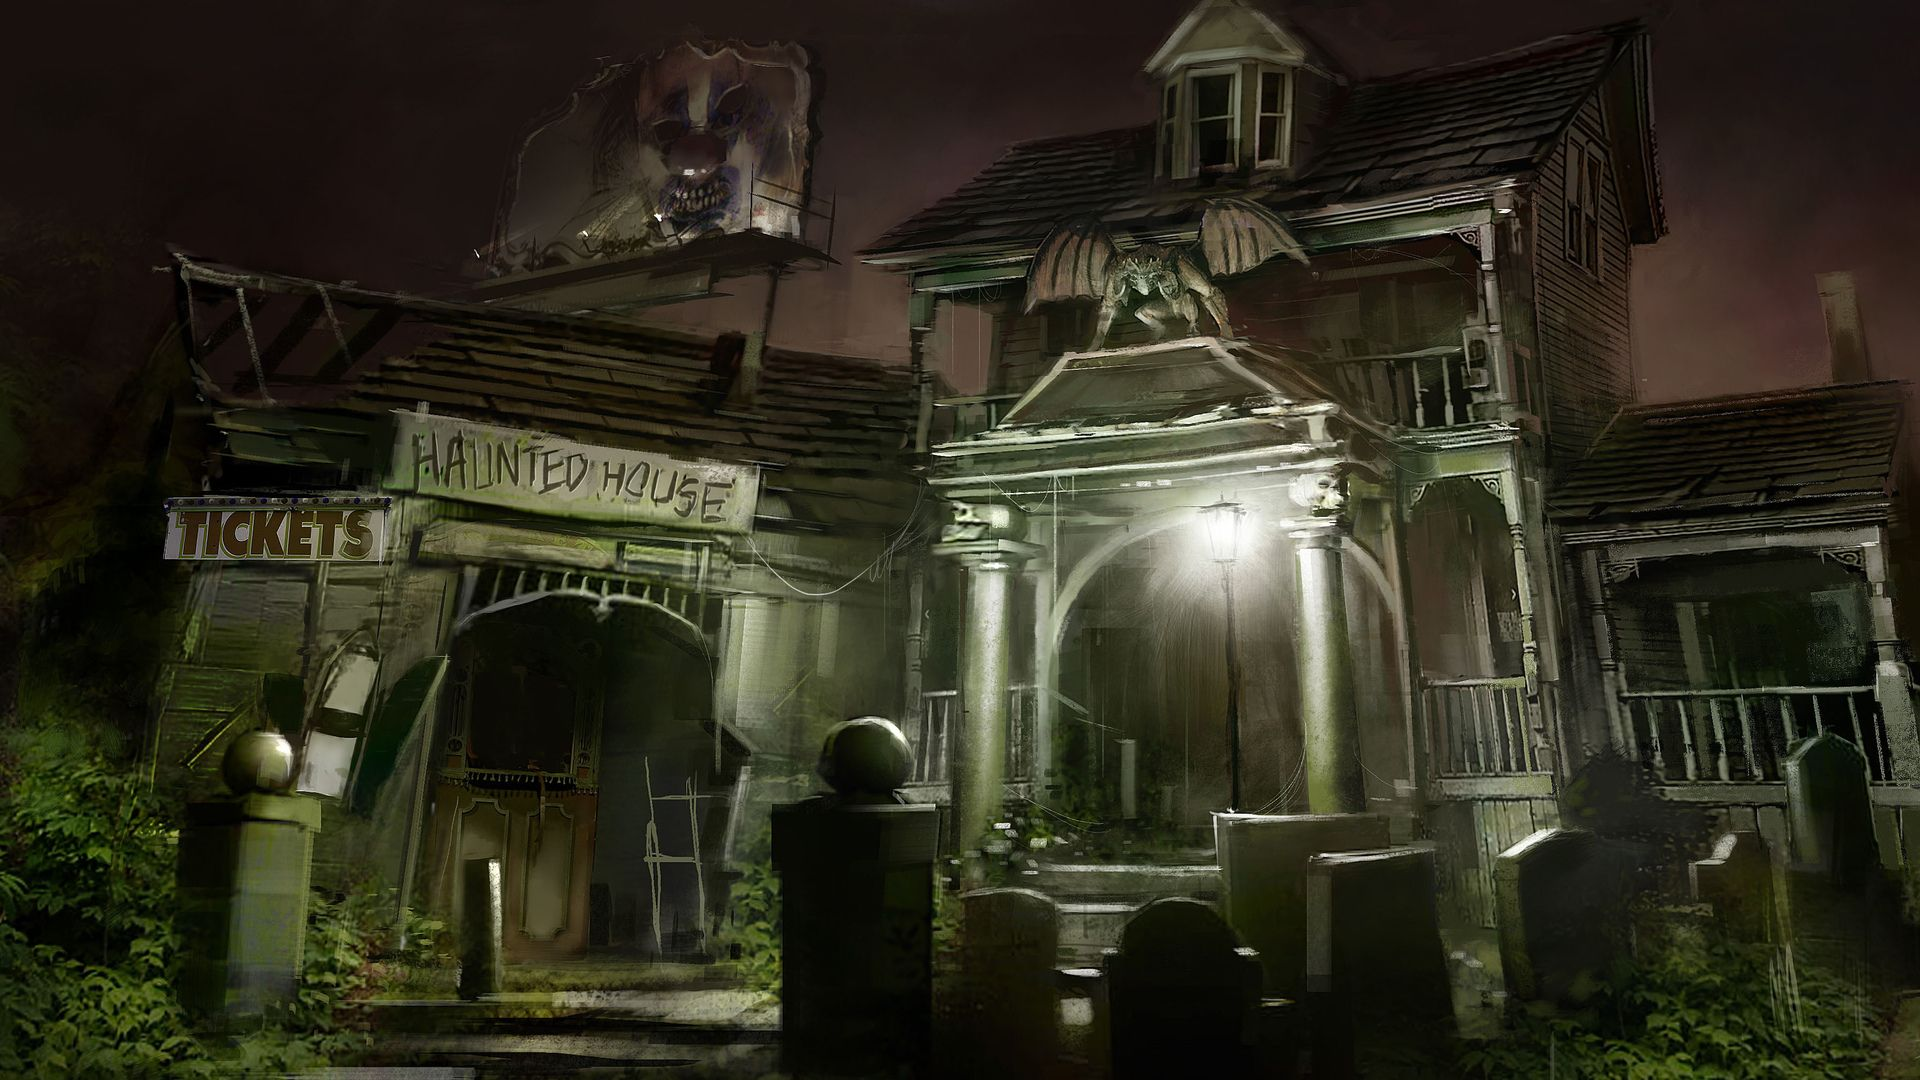 Sinister Mansion, Ghosts In The Cemetery Artdownload free wallpaper image